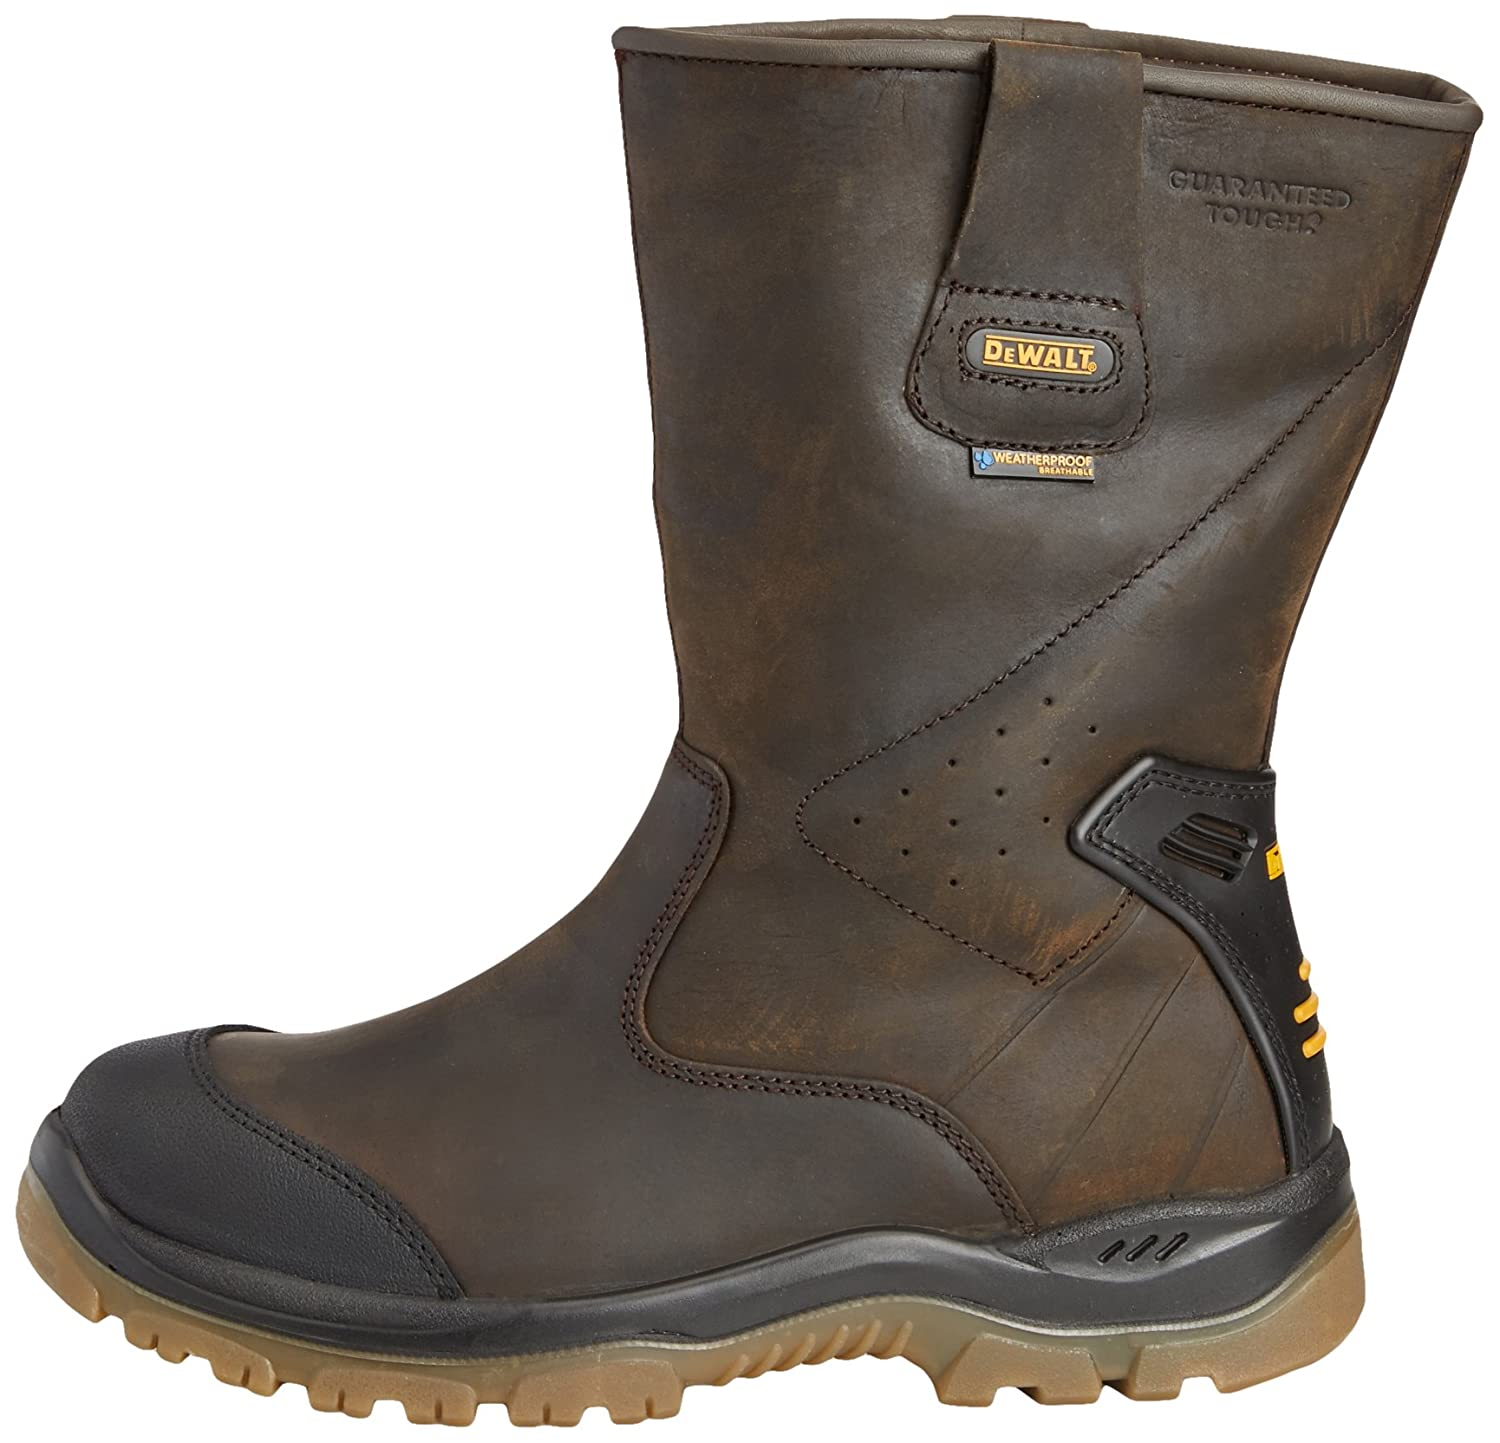 Apache AP305 Leather Work Rigger Boot Water Resistant SOCKS INCLUDED